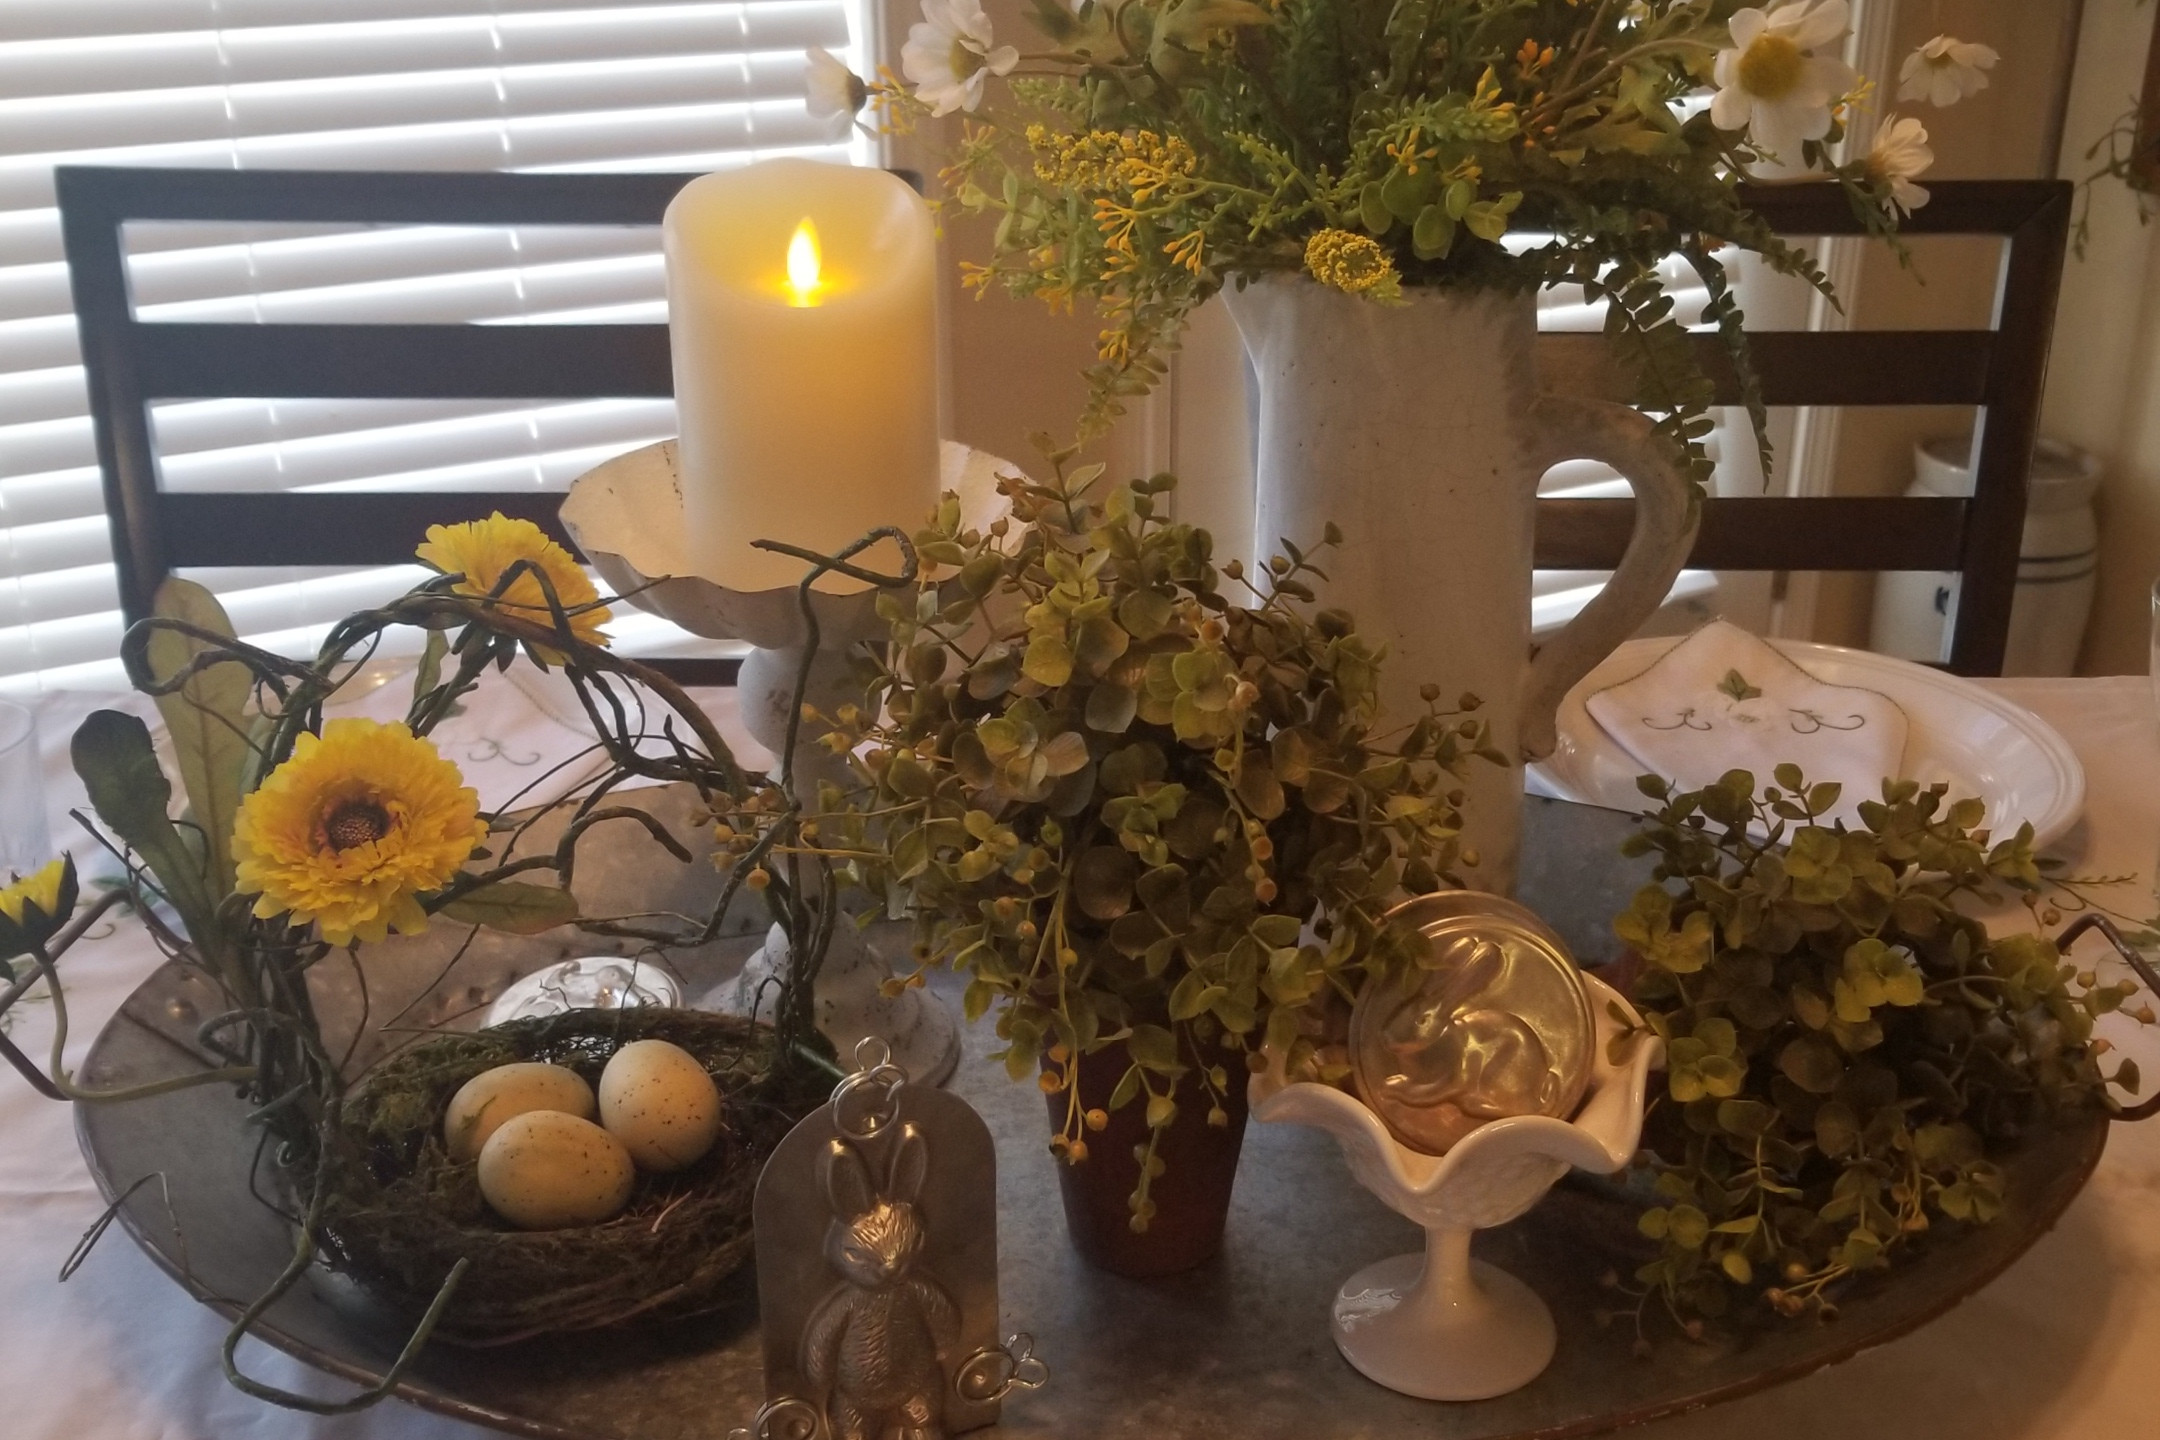 Our Festive Easter Table Inspiration